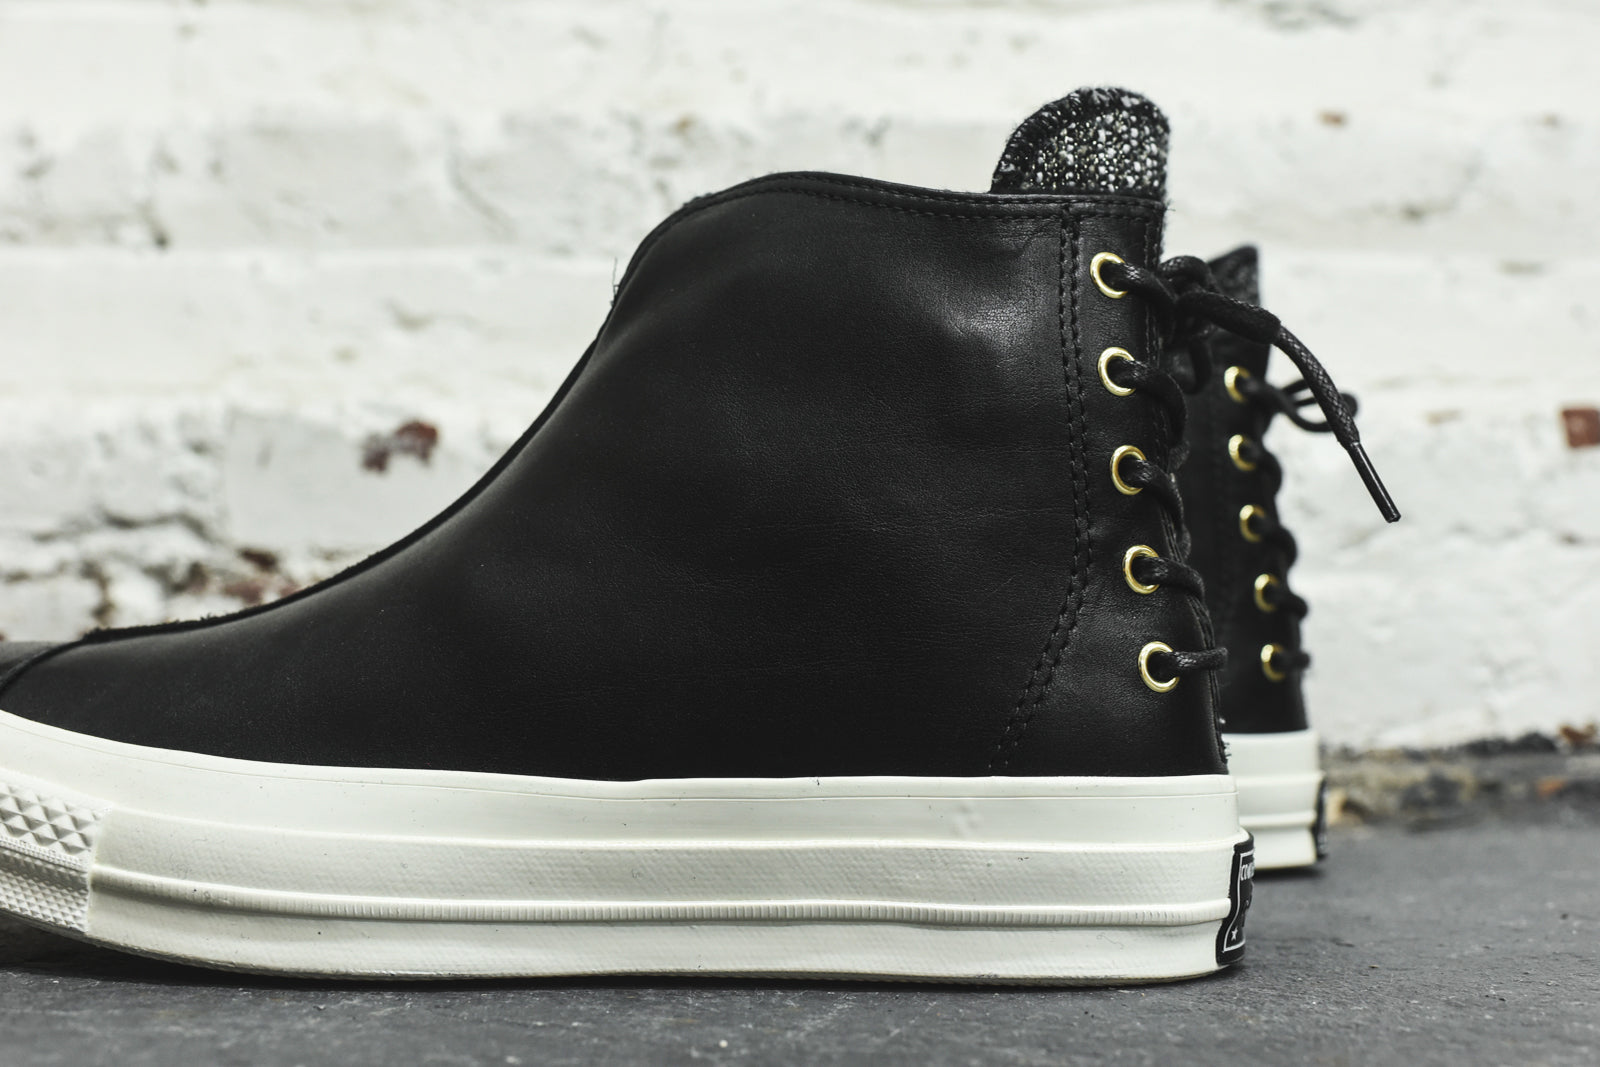 337bbc20d3eba8 Converse Chuck Taylor All Star  70 Punk Boot - Black – Kith